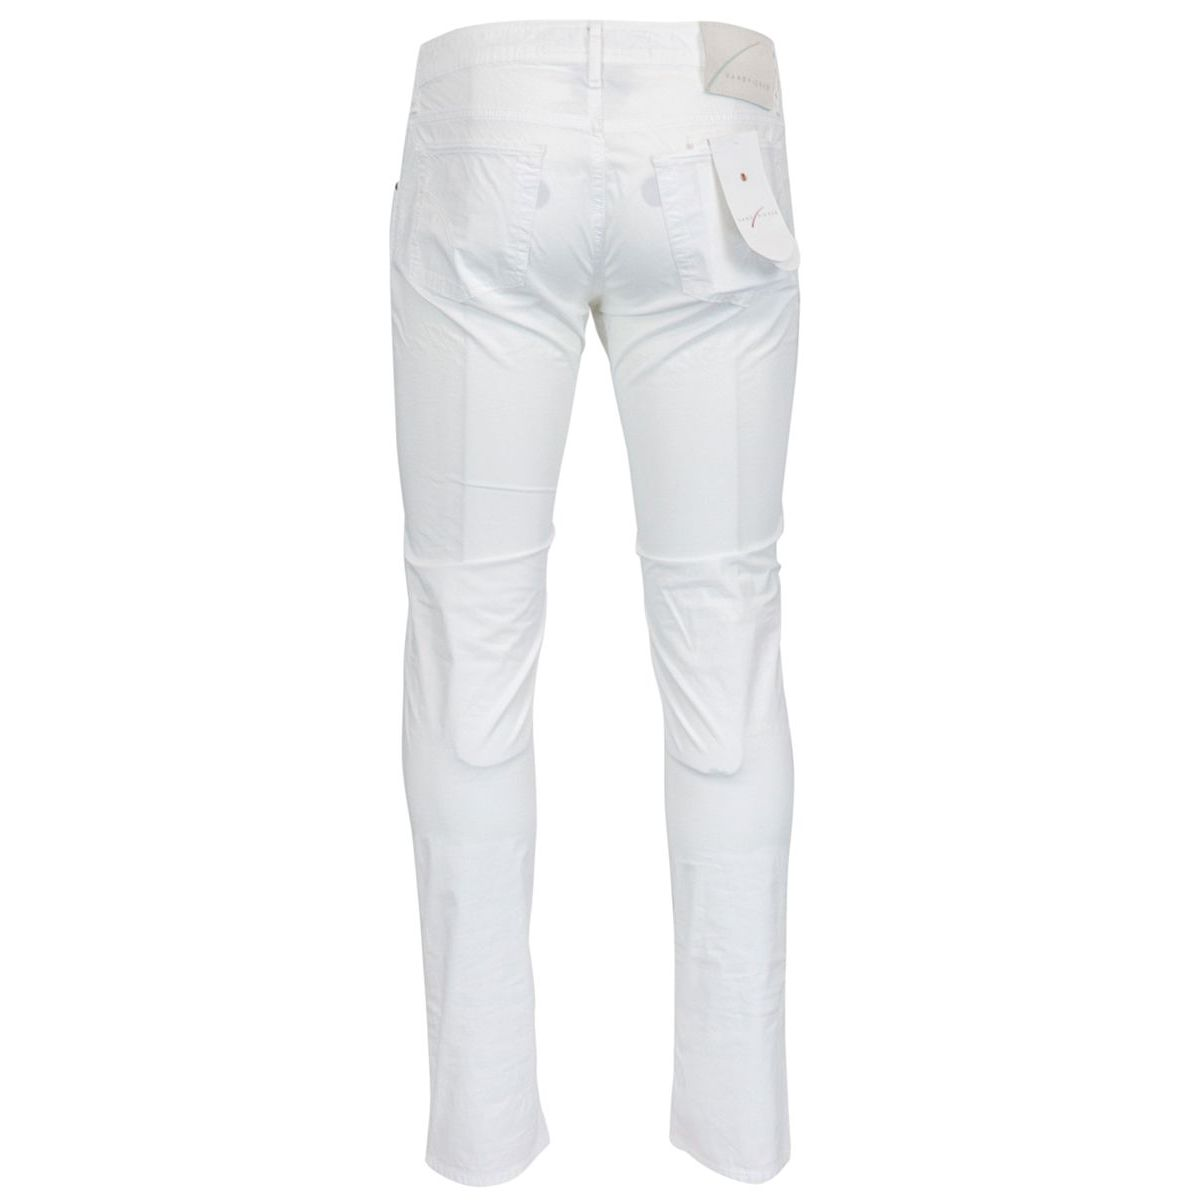 Slim trousers with 5 pockets in stretch cotton Optical white Hand Picked